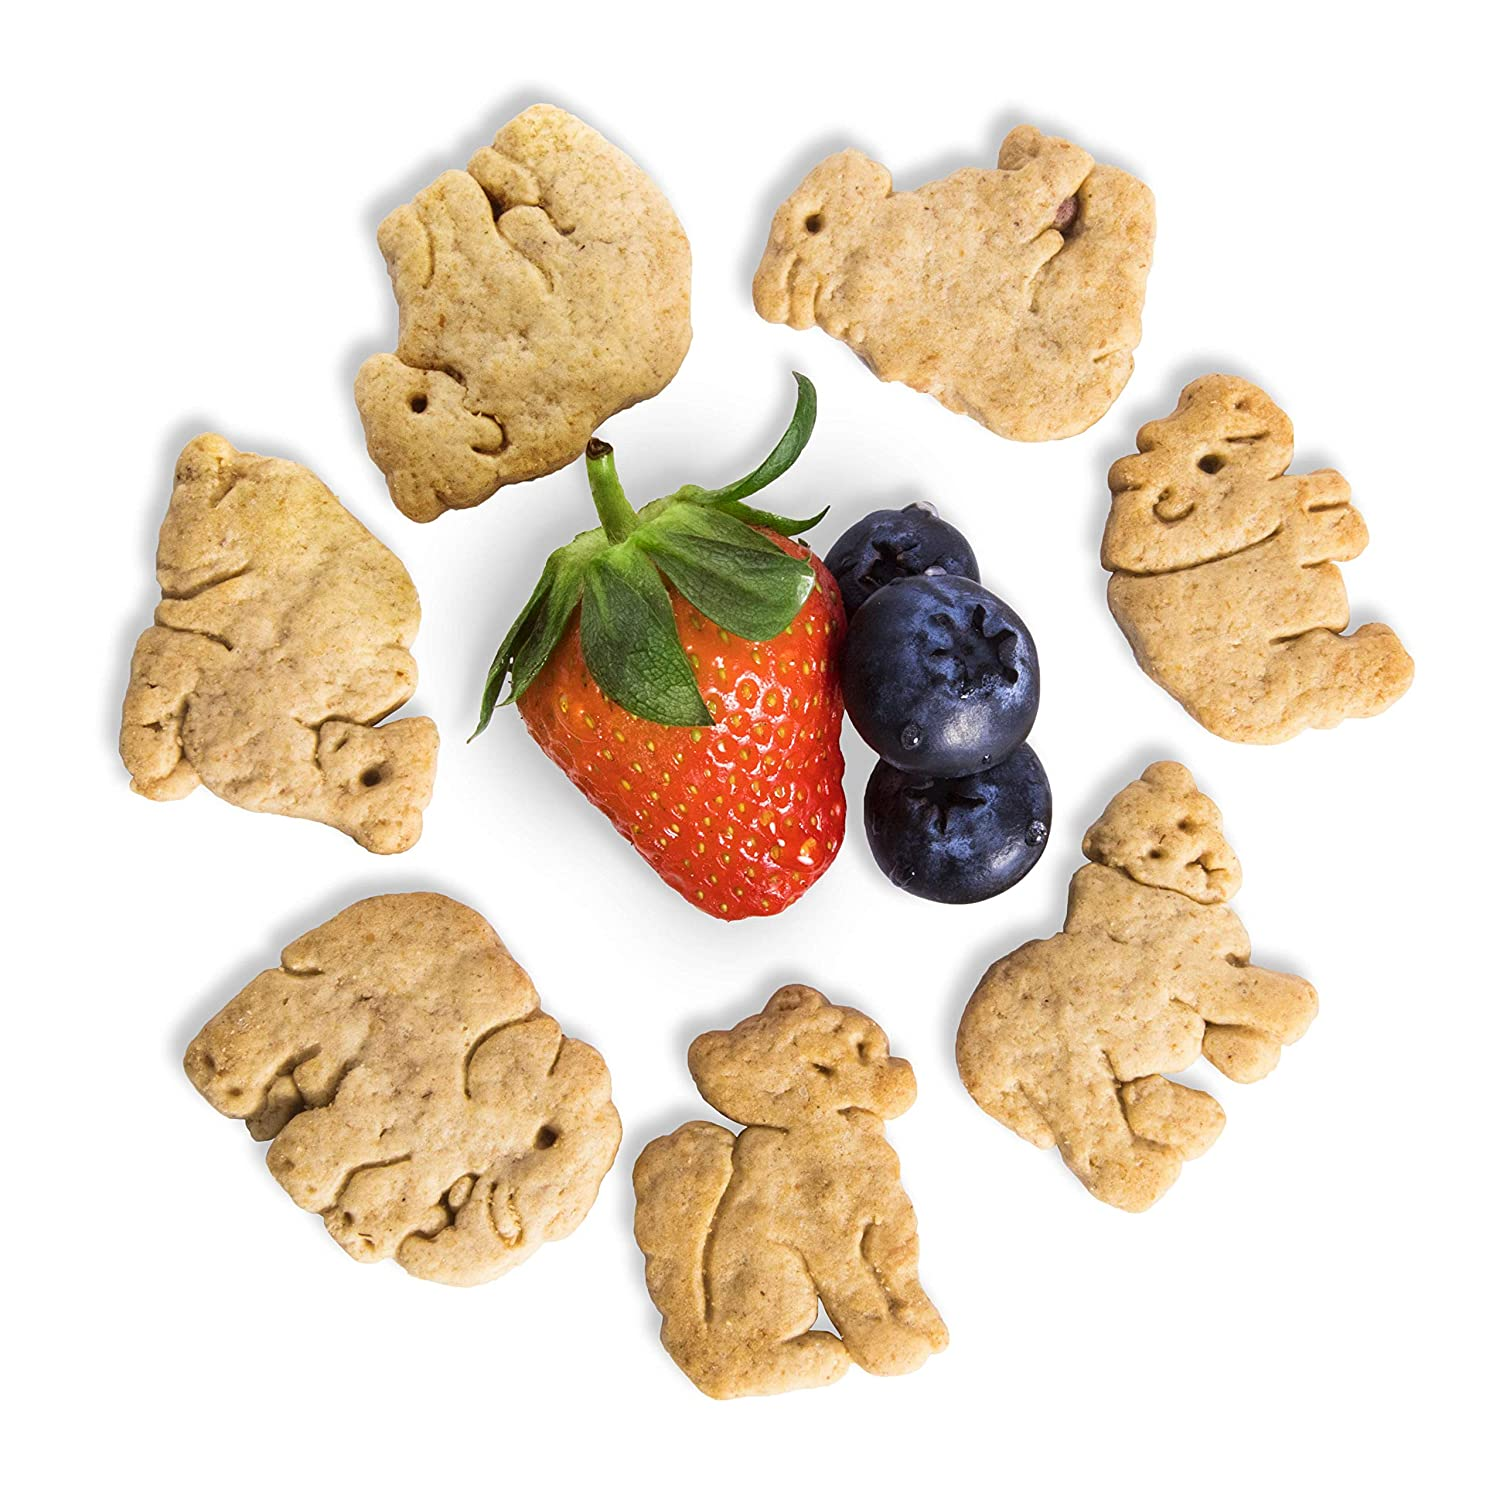 Appleways Bulk Max 75% OFF Mixed Berry Animal Crackers Selling 5 1 count lbs.